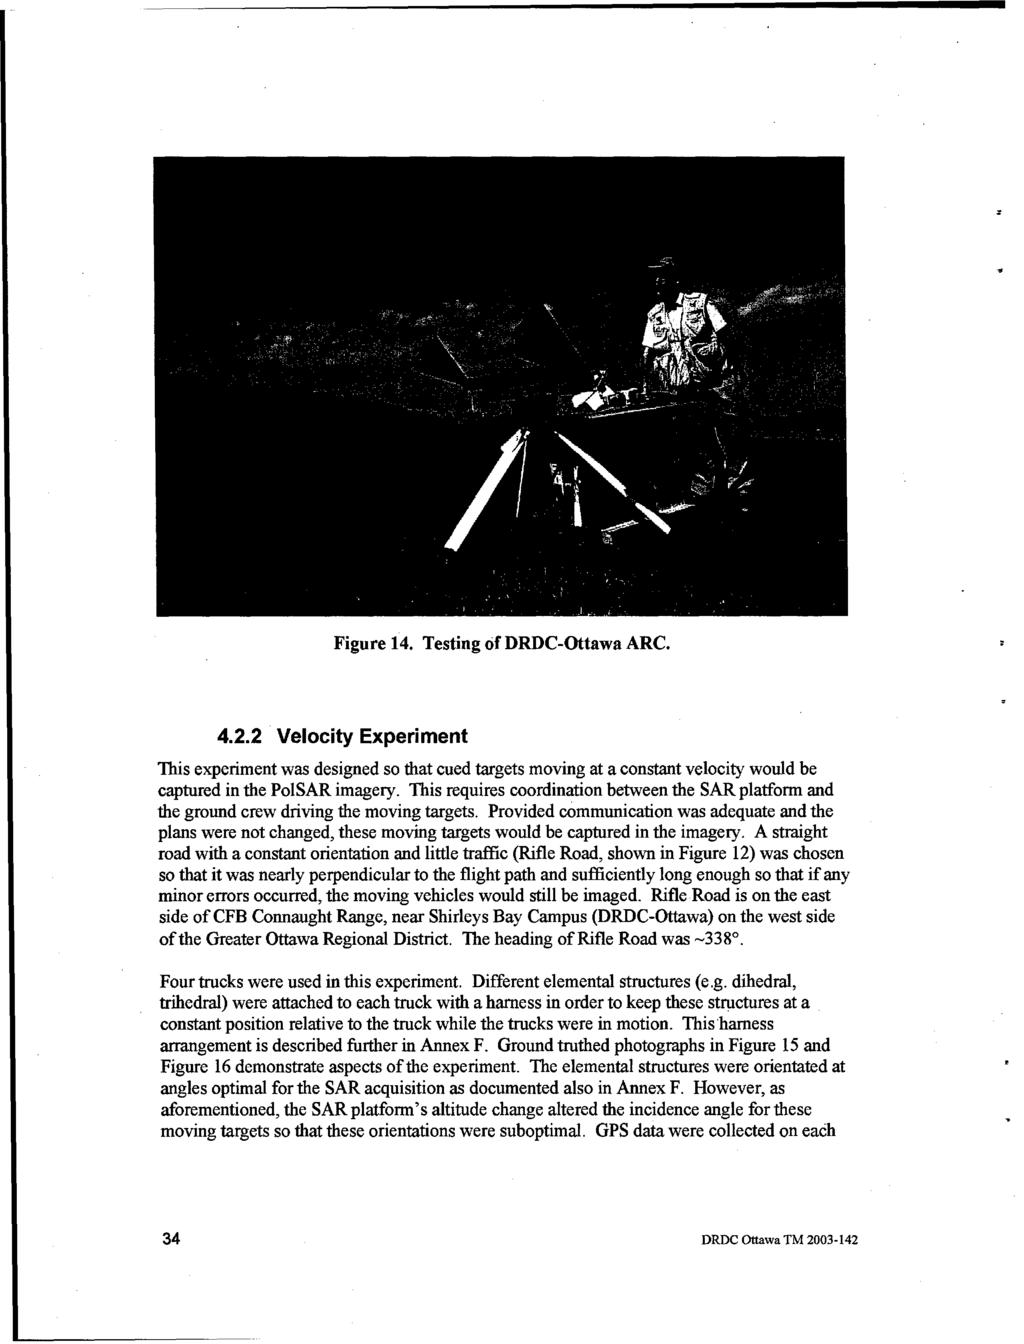 Figure 14. Testing of DRDC-Ottawa ARC. 4.2.2 Velocity Experiment This experiment was designed so that cued targets moving at a constant velocity would be captured in the PoISAR imagery.